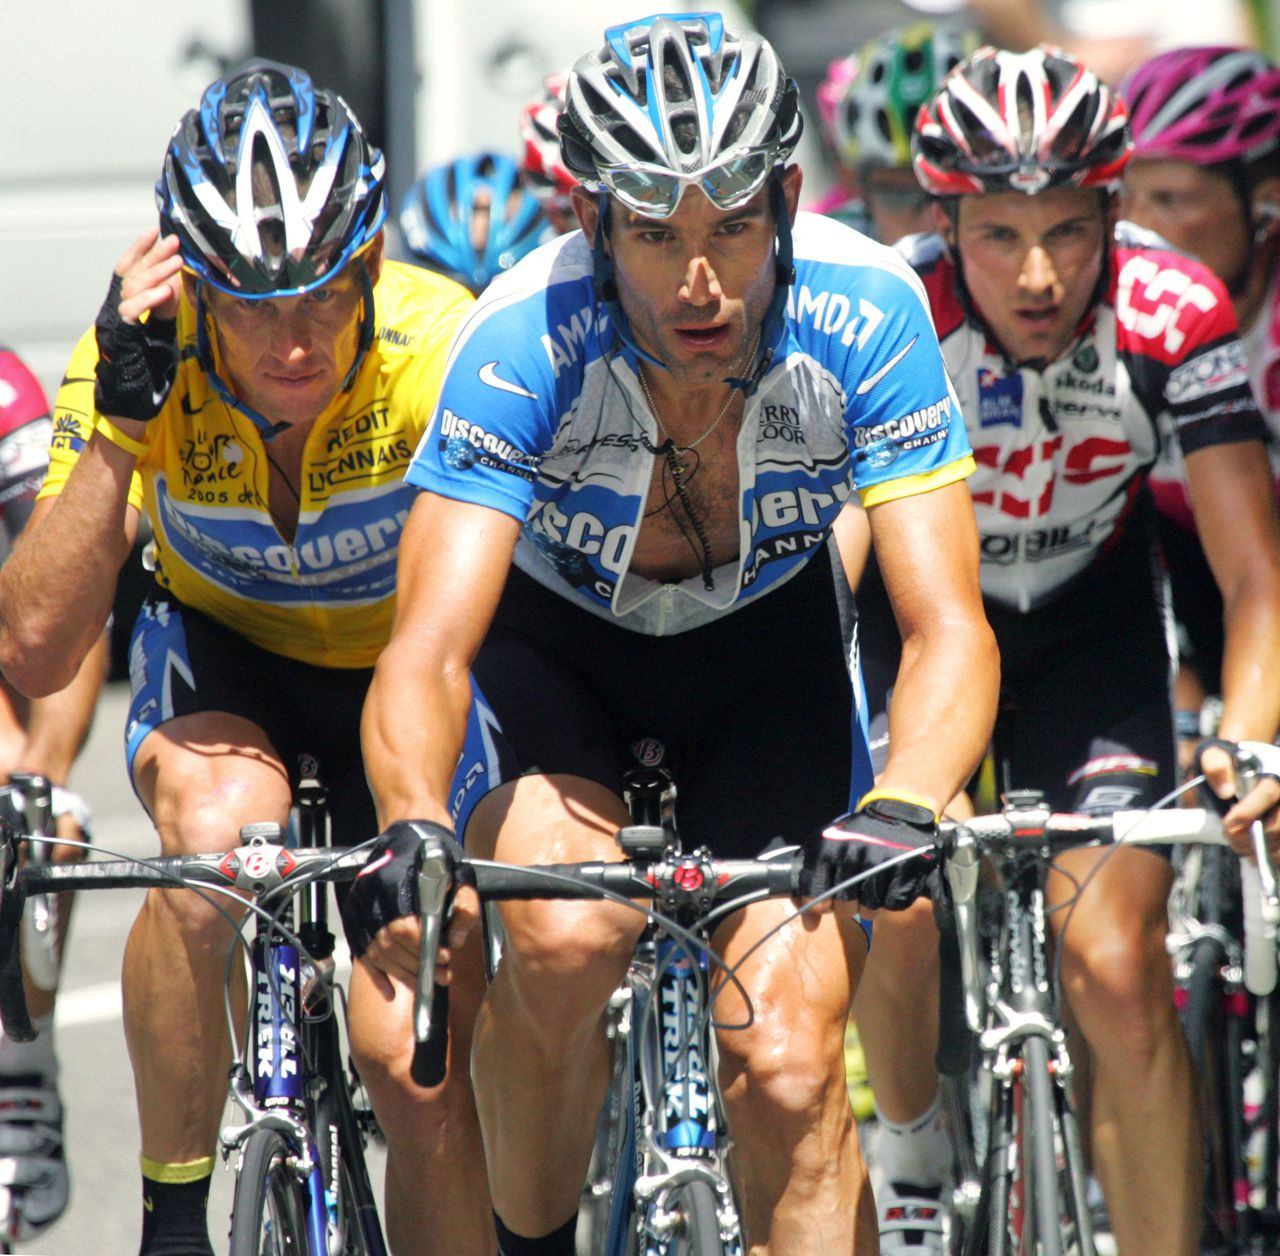 (From L) US Lance Armstrong (Discovery Channel/USA) his teammate US George Hincapie and Italian Ivan Basso (CSC/Den) ride during the 16th stage of the 92nd Tour de France cycling race between Mourenx and Pau, 19 July 2005. AFP PHOTO JOEL SAGET